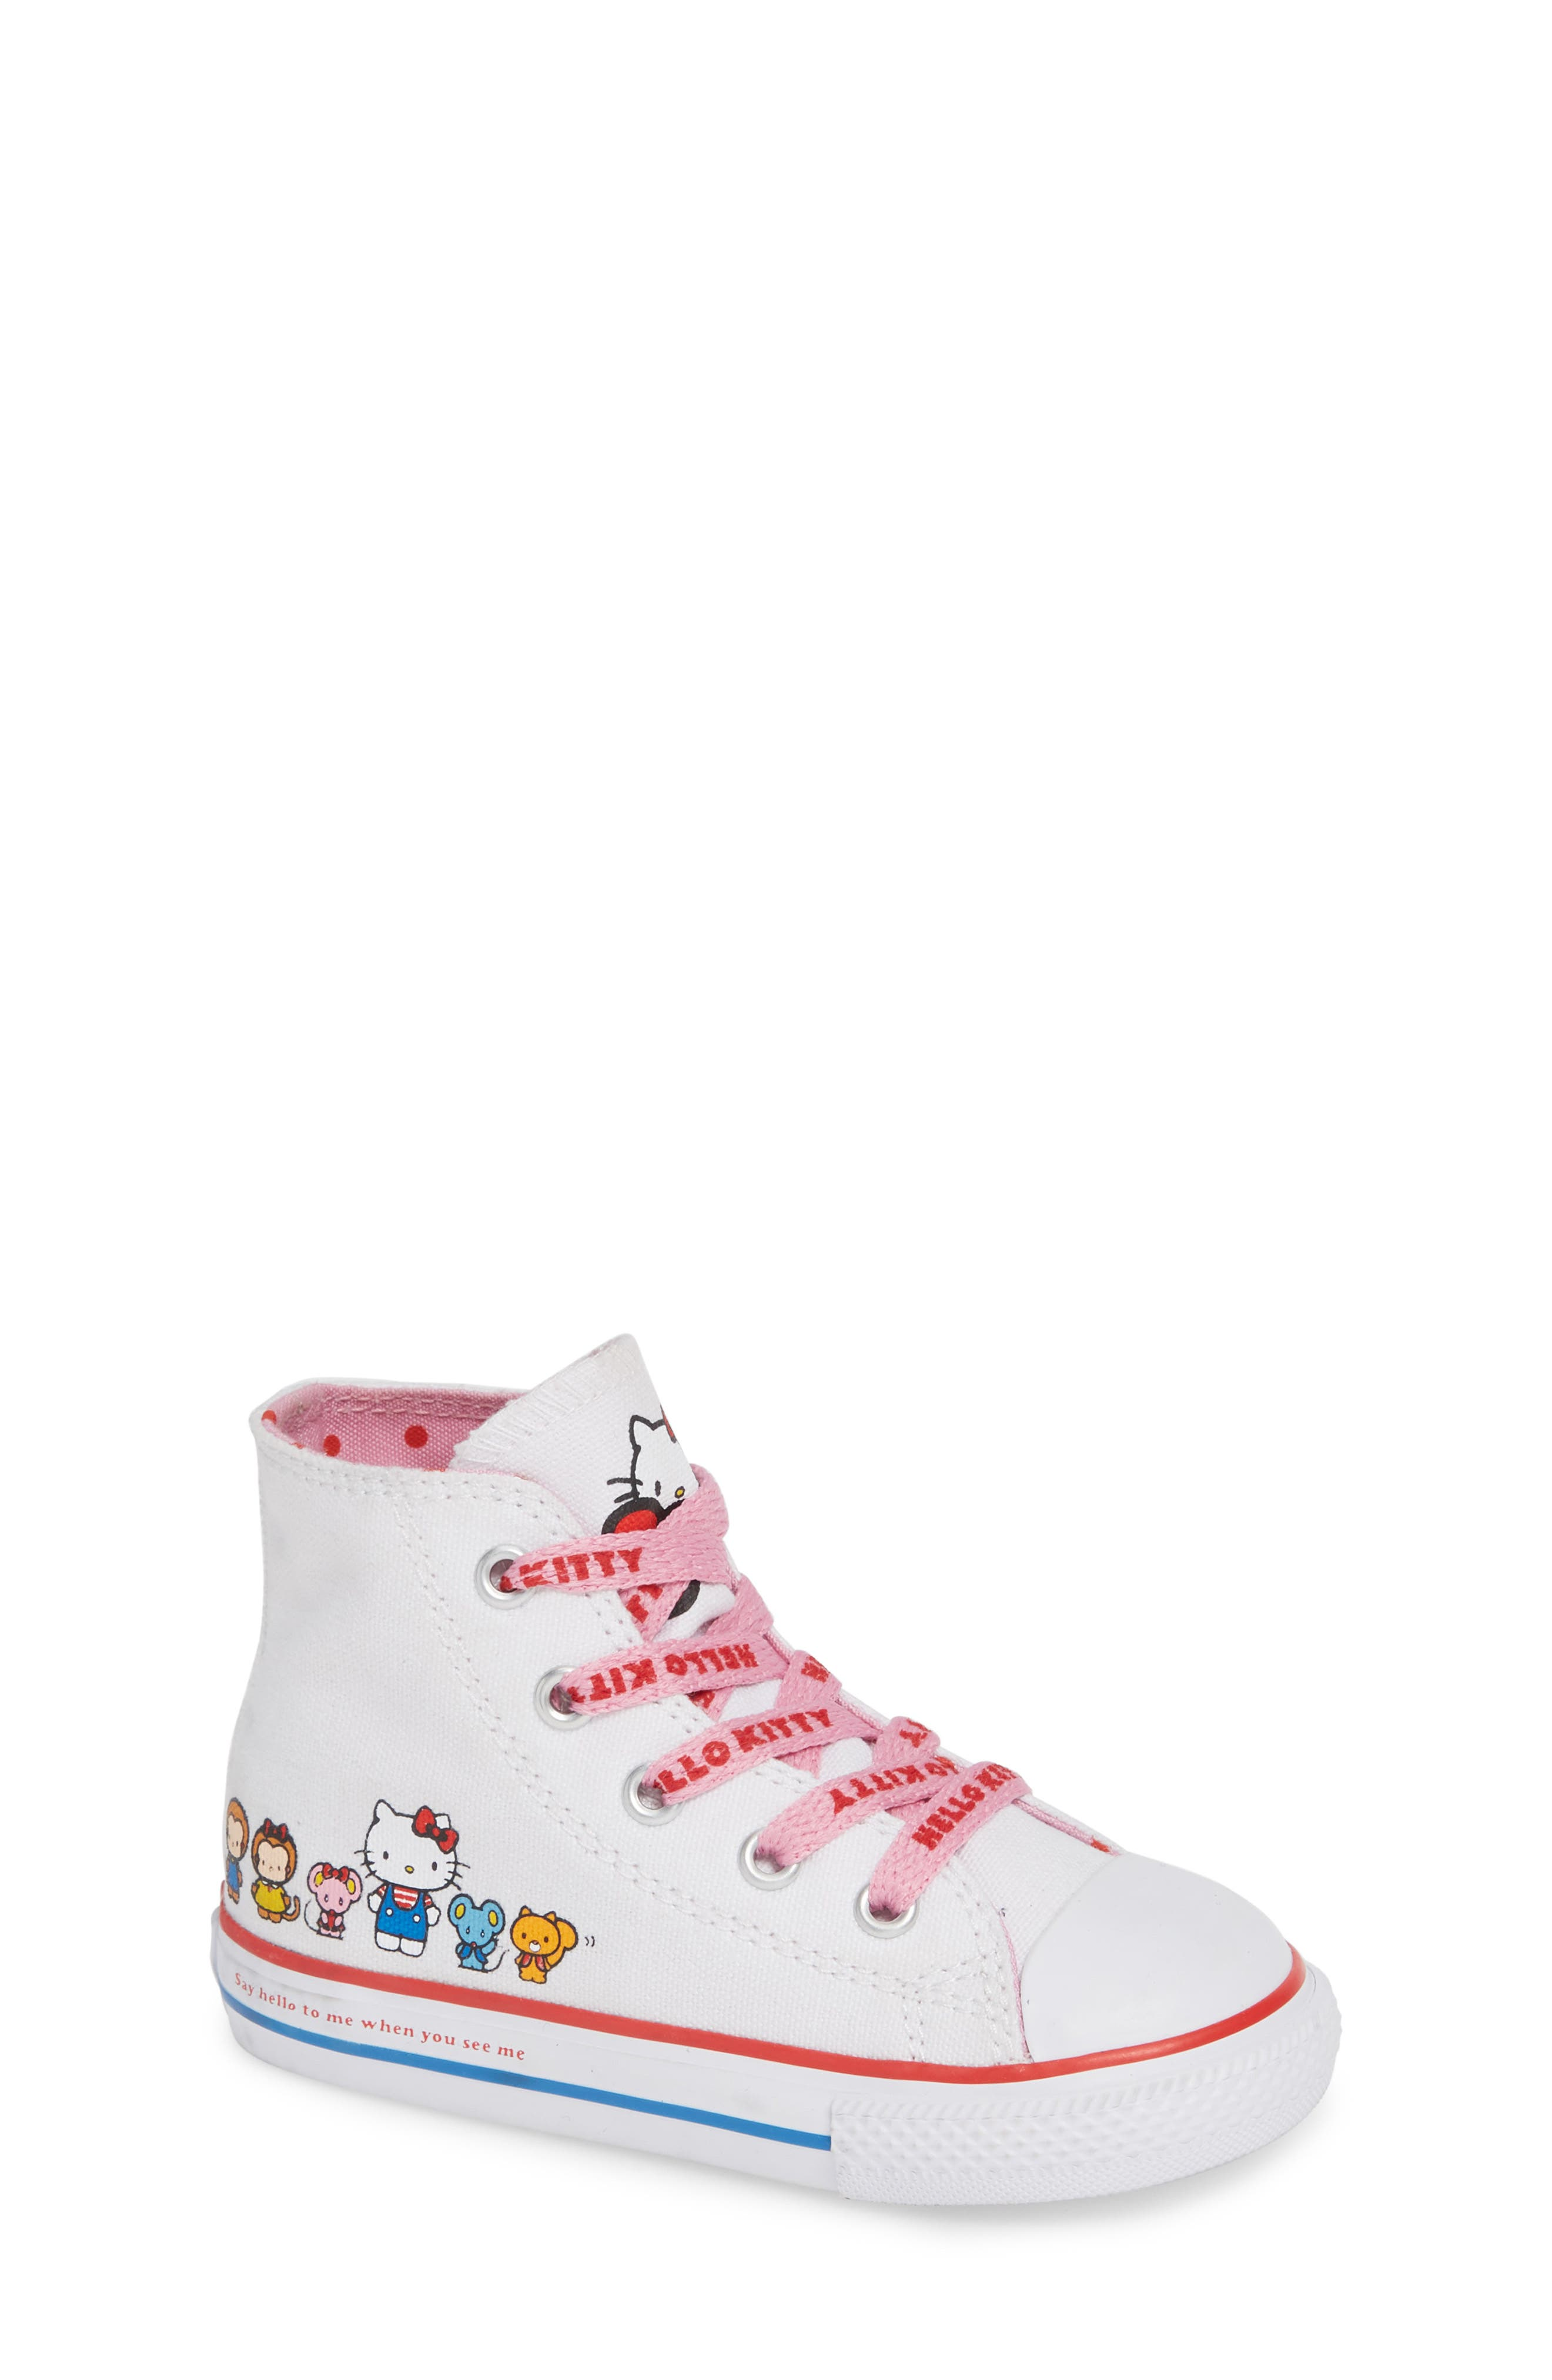 Chuck Taylor<sup>®</sup> All Star<sup>®</sup> Hello Kitty<sup>®</sup> High Top Sneaker,                         Main,                         color, WHITE